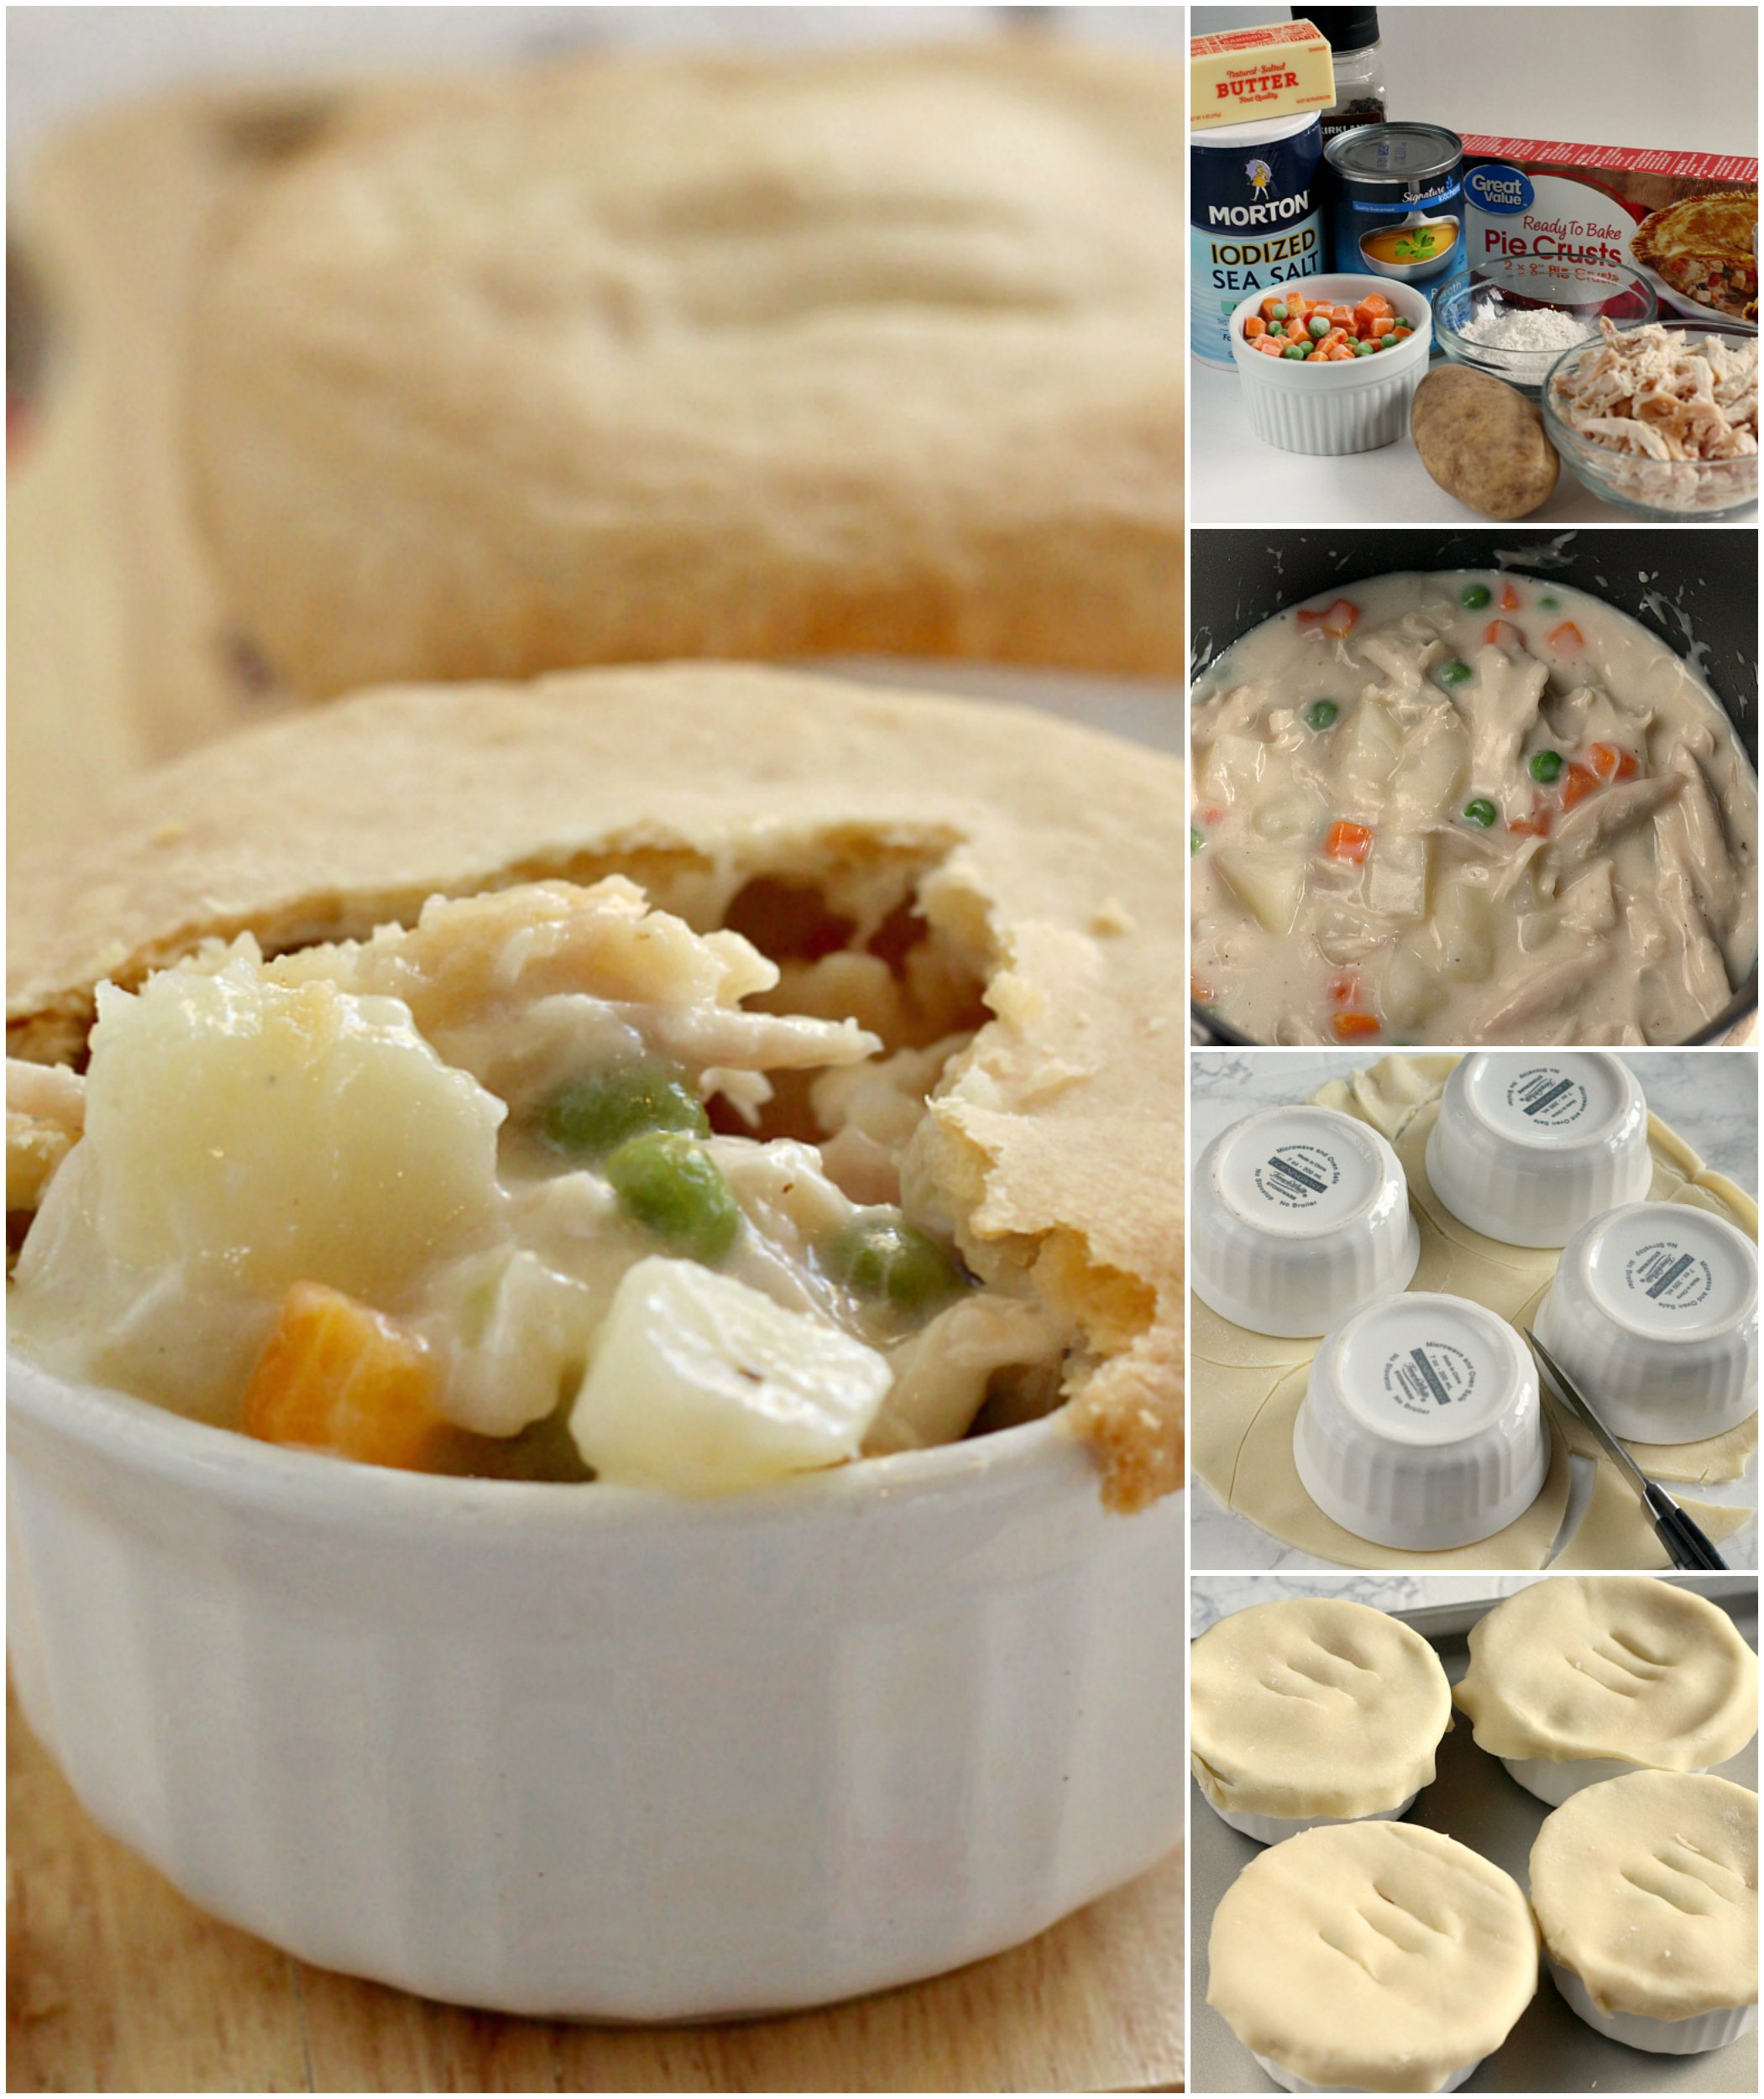 Chicken Pot Pie is the ultimate comfort food full of chicken and vegetables in a creamy sauce covered with a flaky pie crust. This Chicken Pot Pie recipe is a family favorite because it is easy to make and is absolutely delicious too!